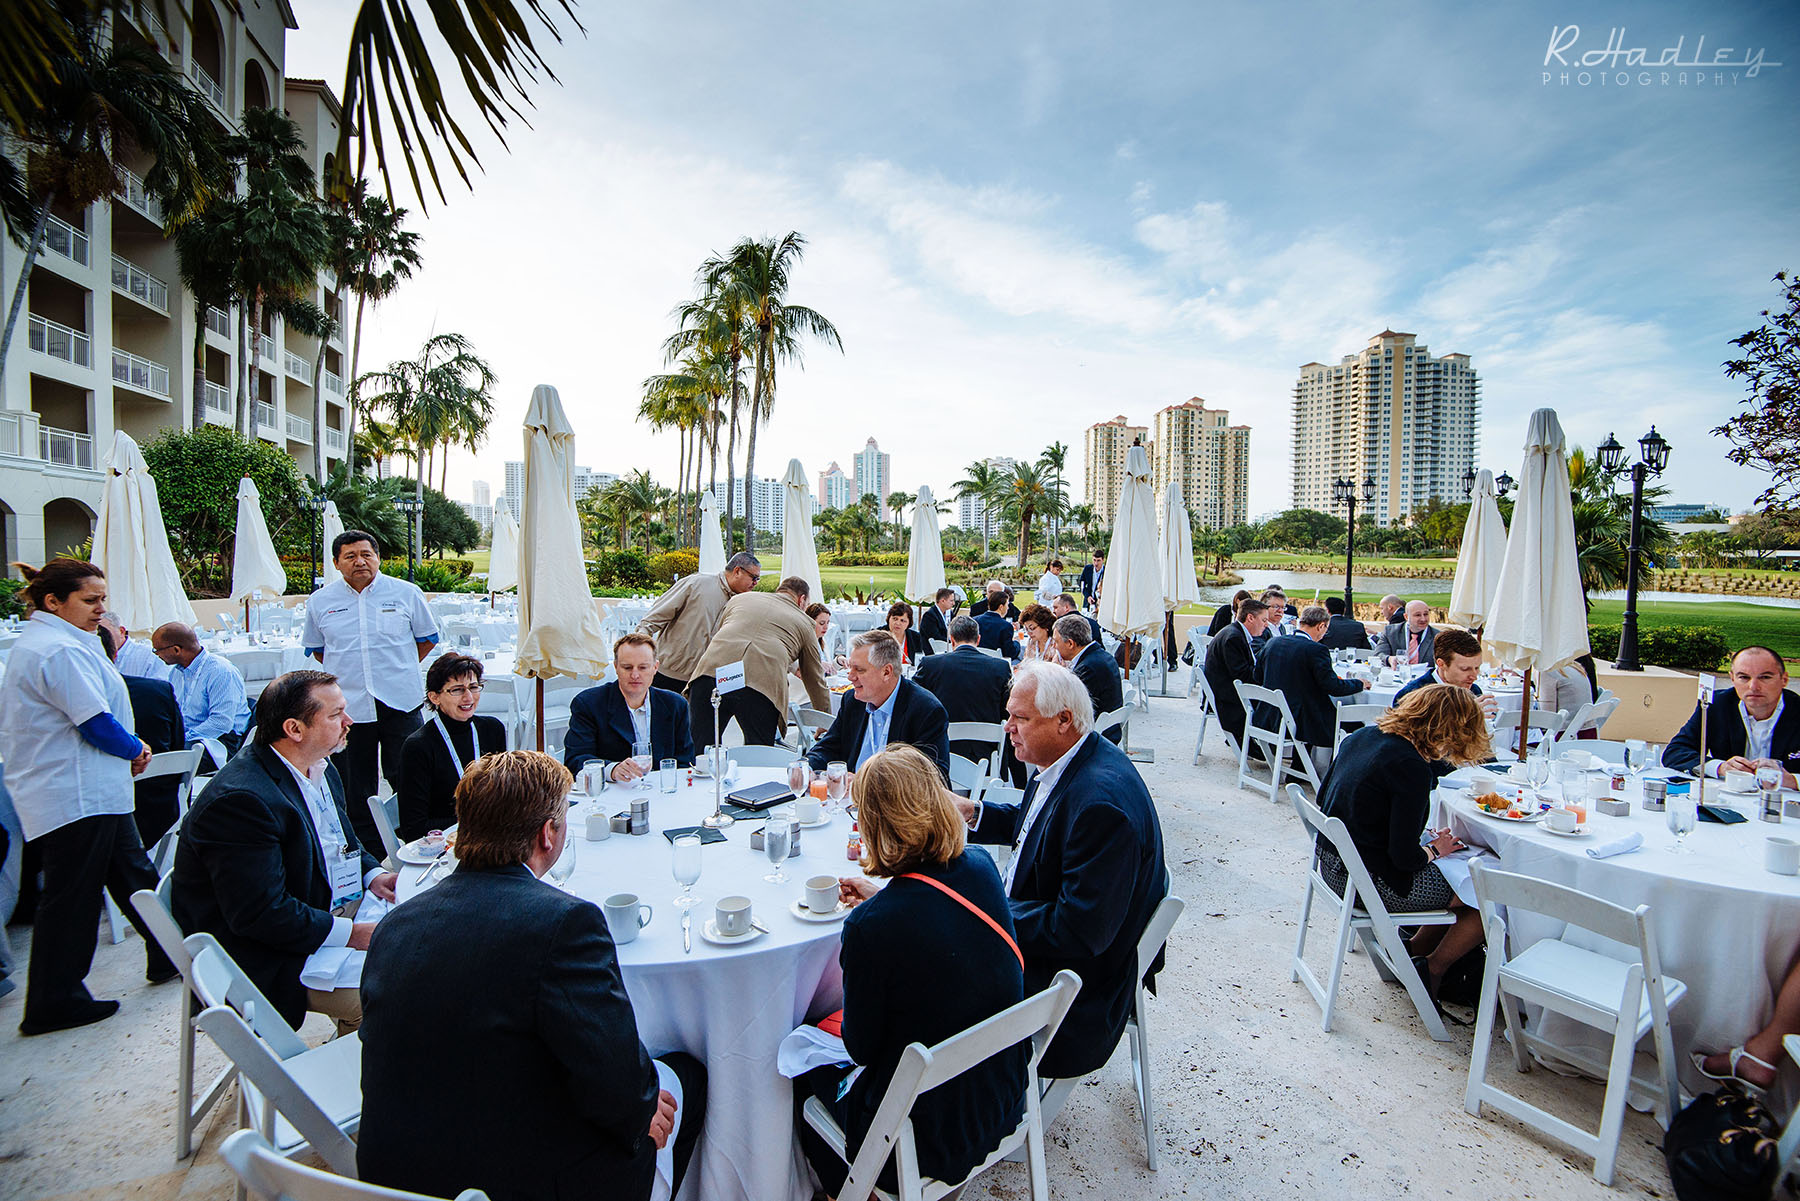 Corporate event at Turnberry Isle, Miami